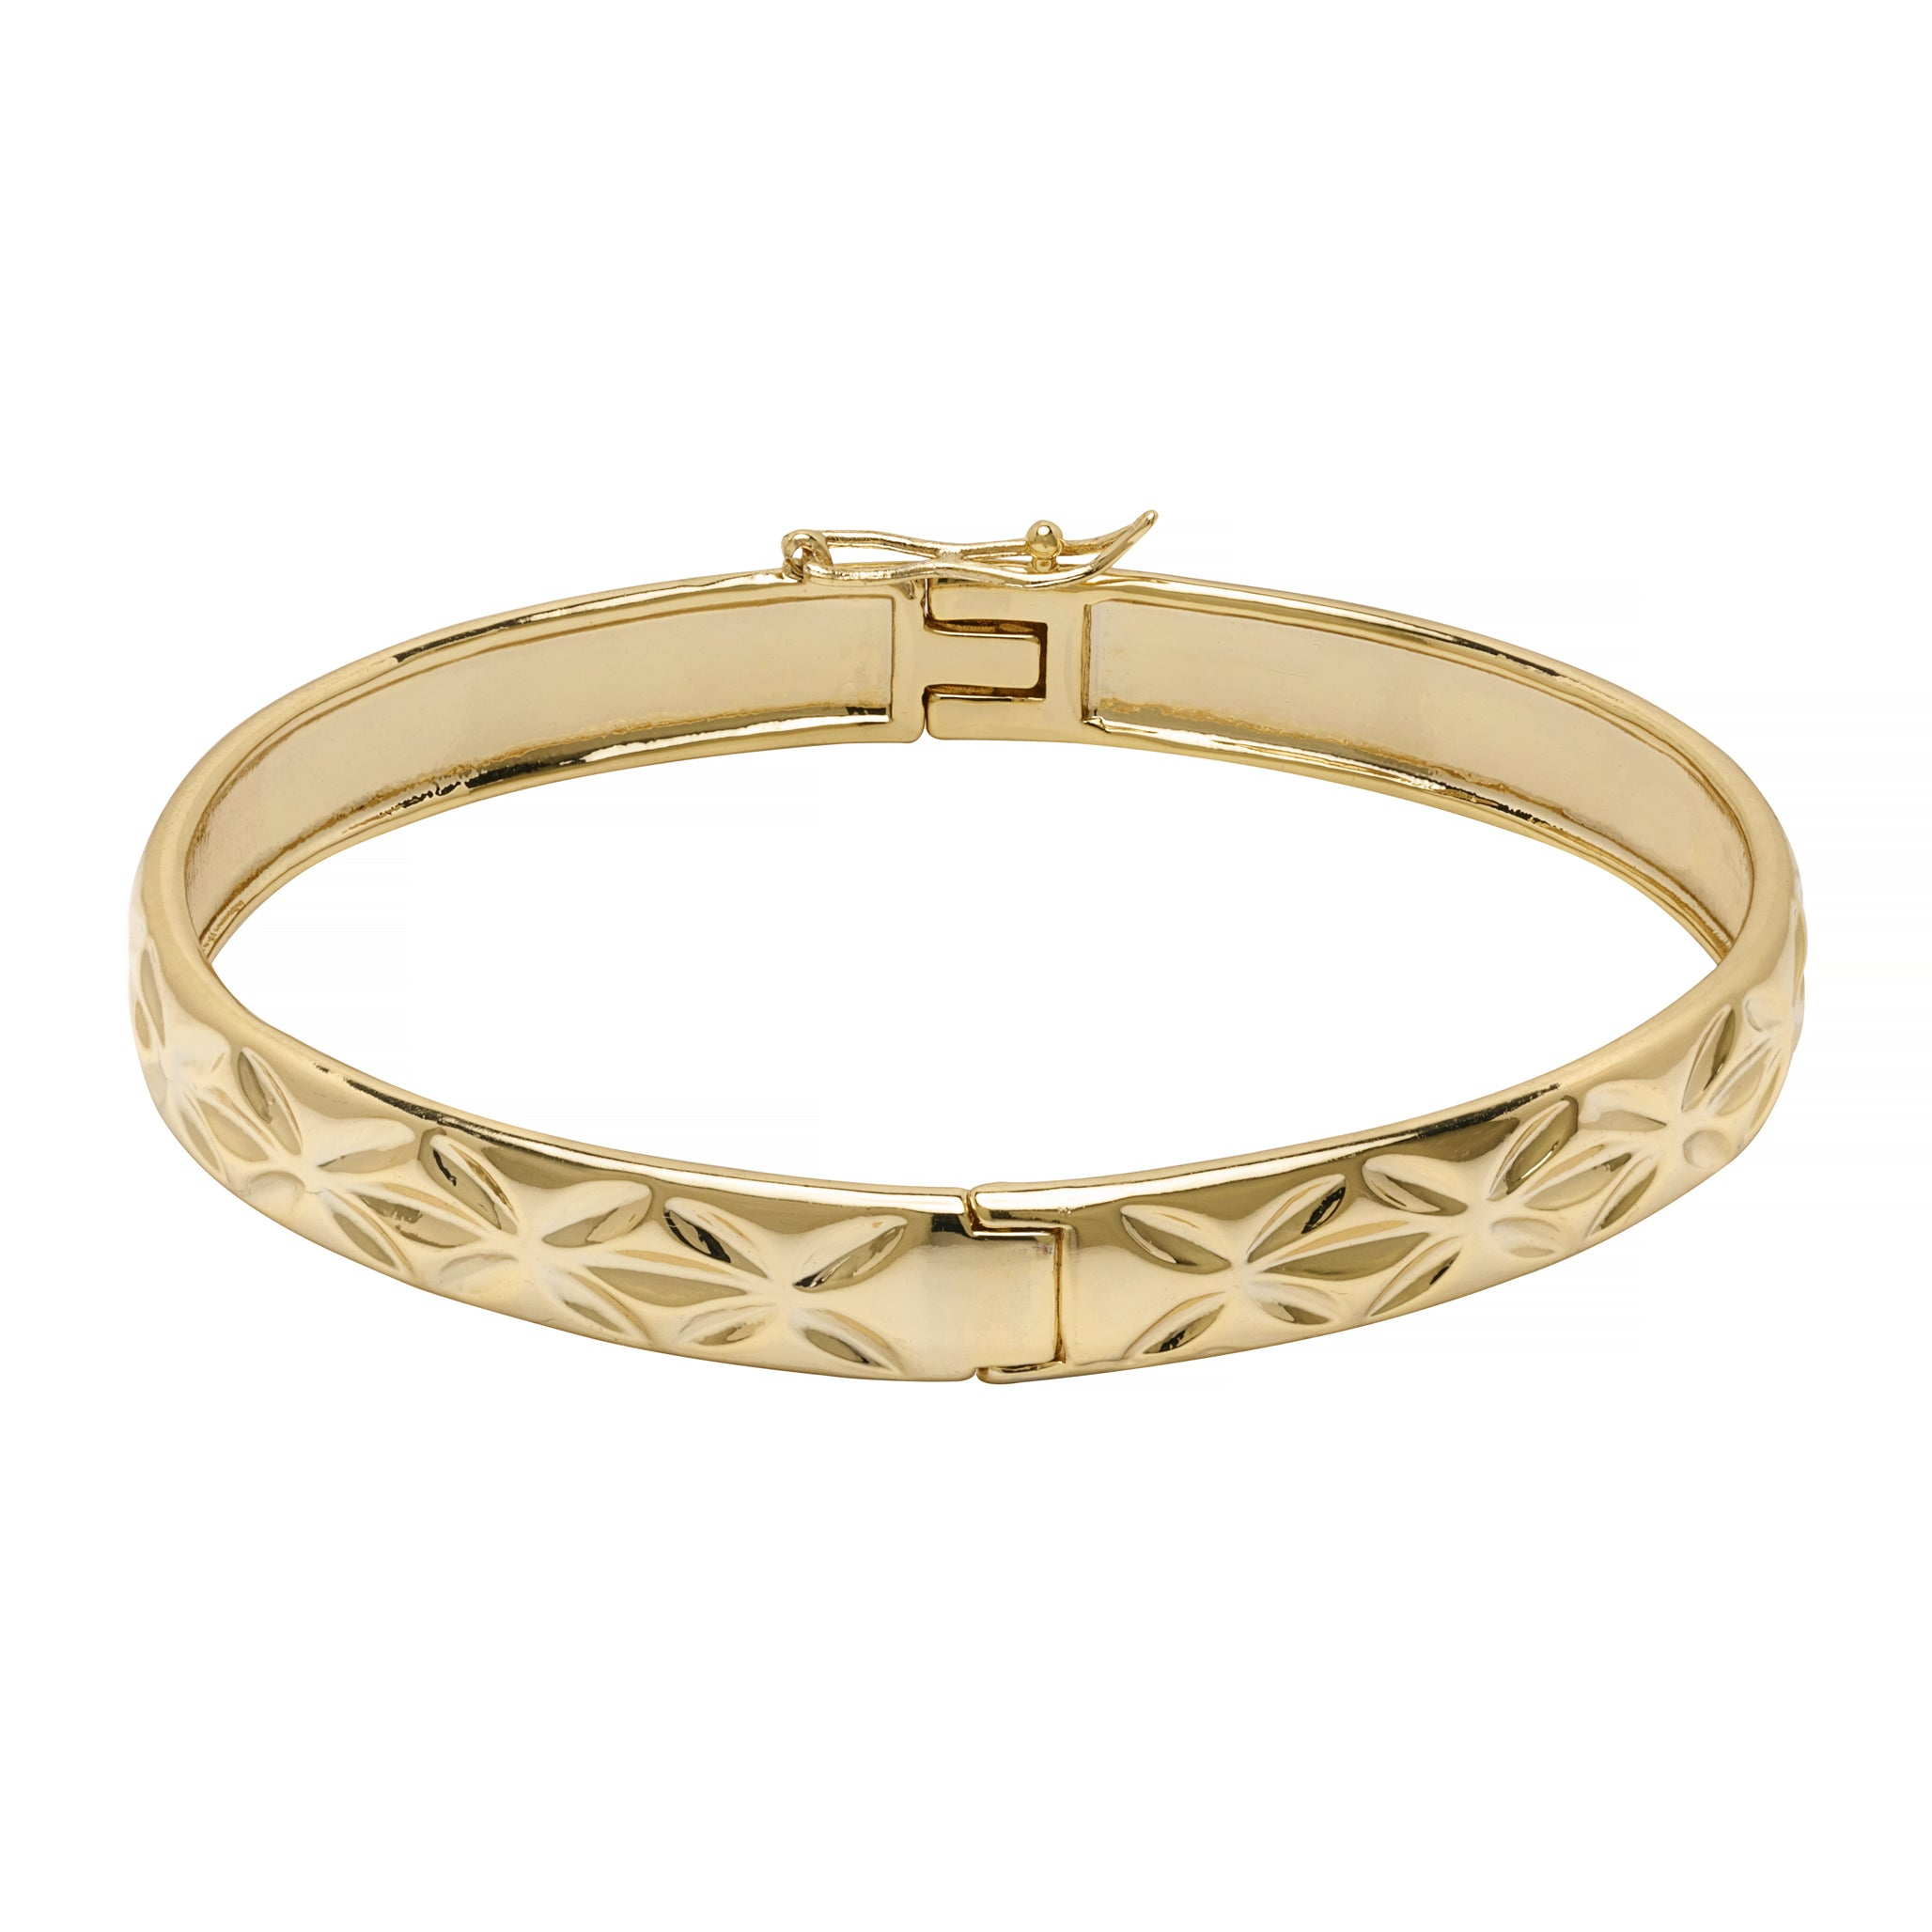 Gold Diamond Pattern Etched Bangle with Box